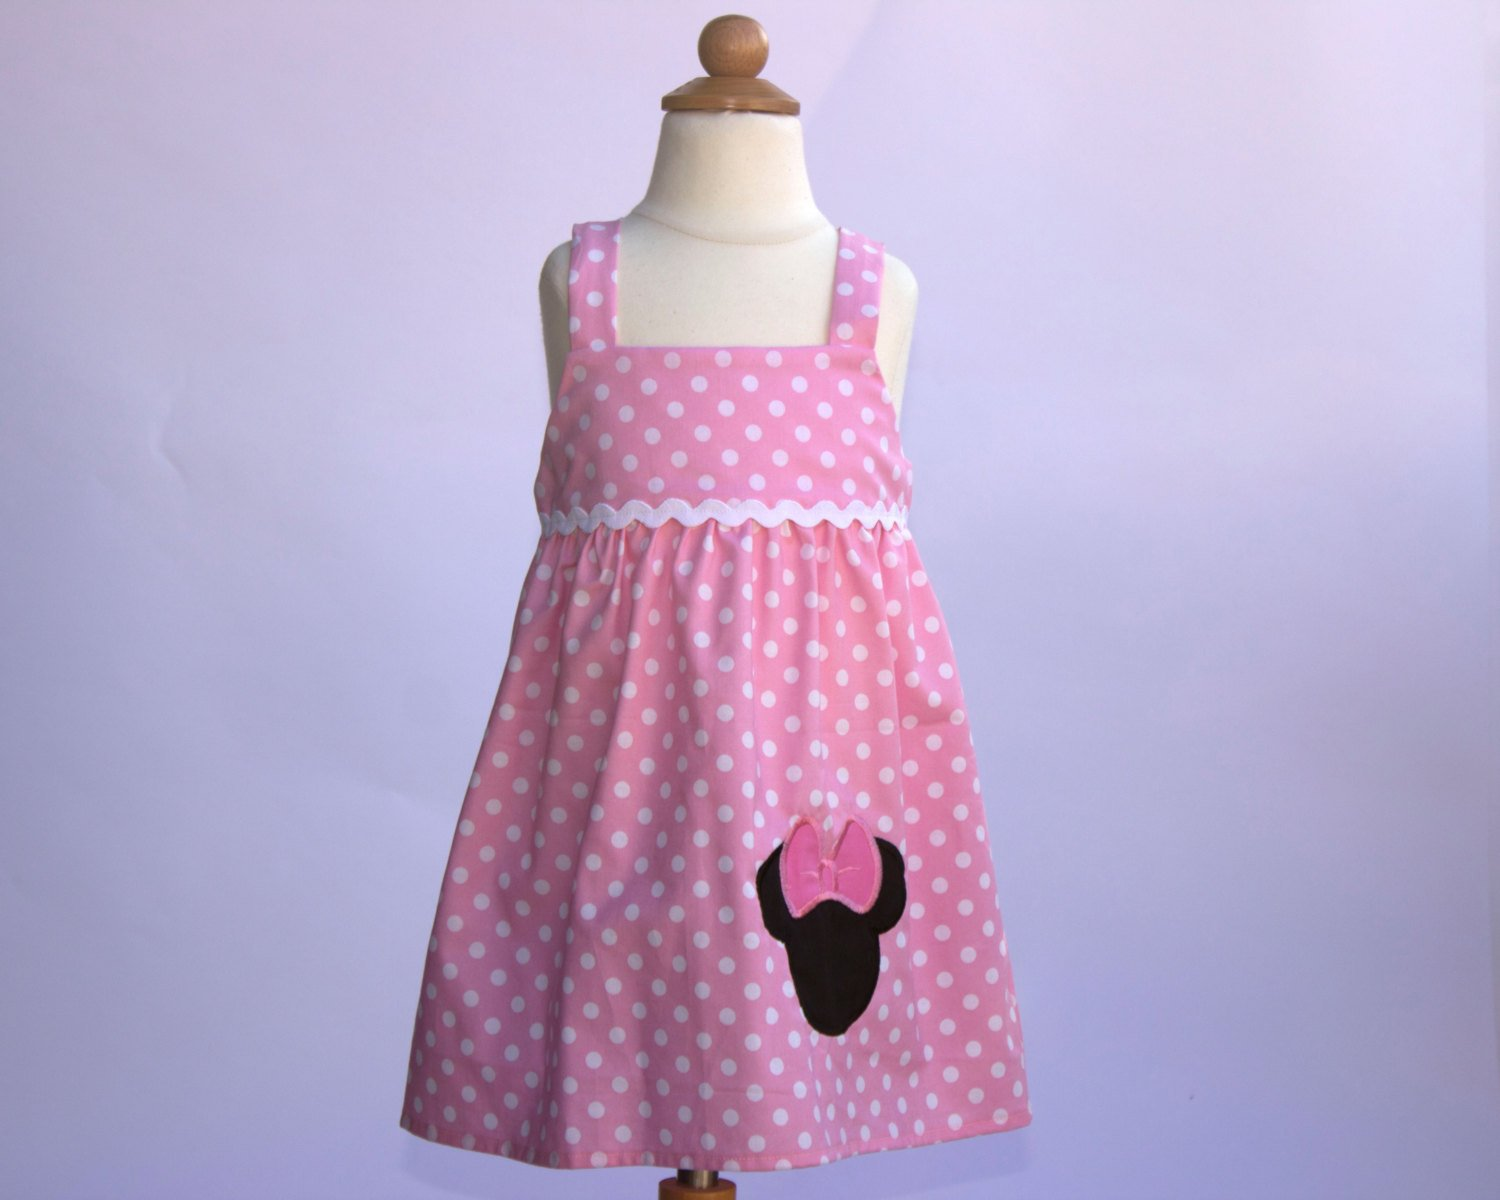 MINNIE BIRTHDAY DRESS Pink Polka dots Minnie  dress Girls dress Tank top dress